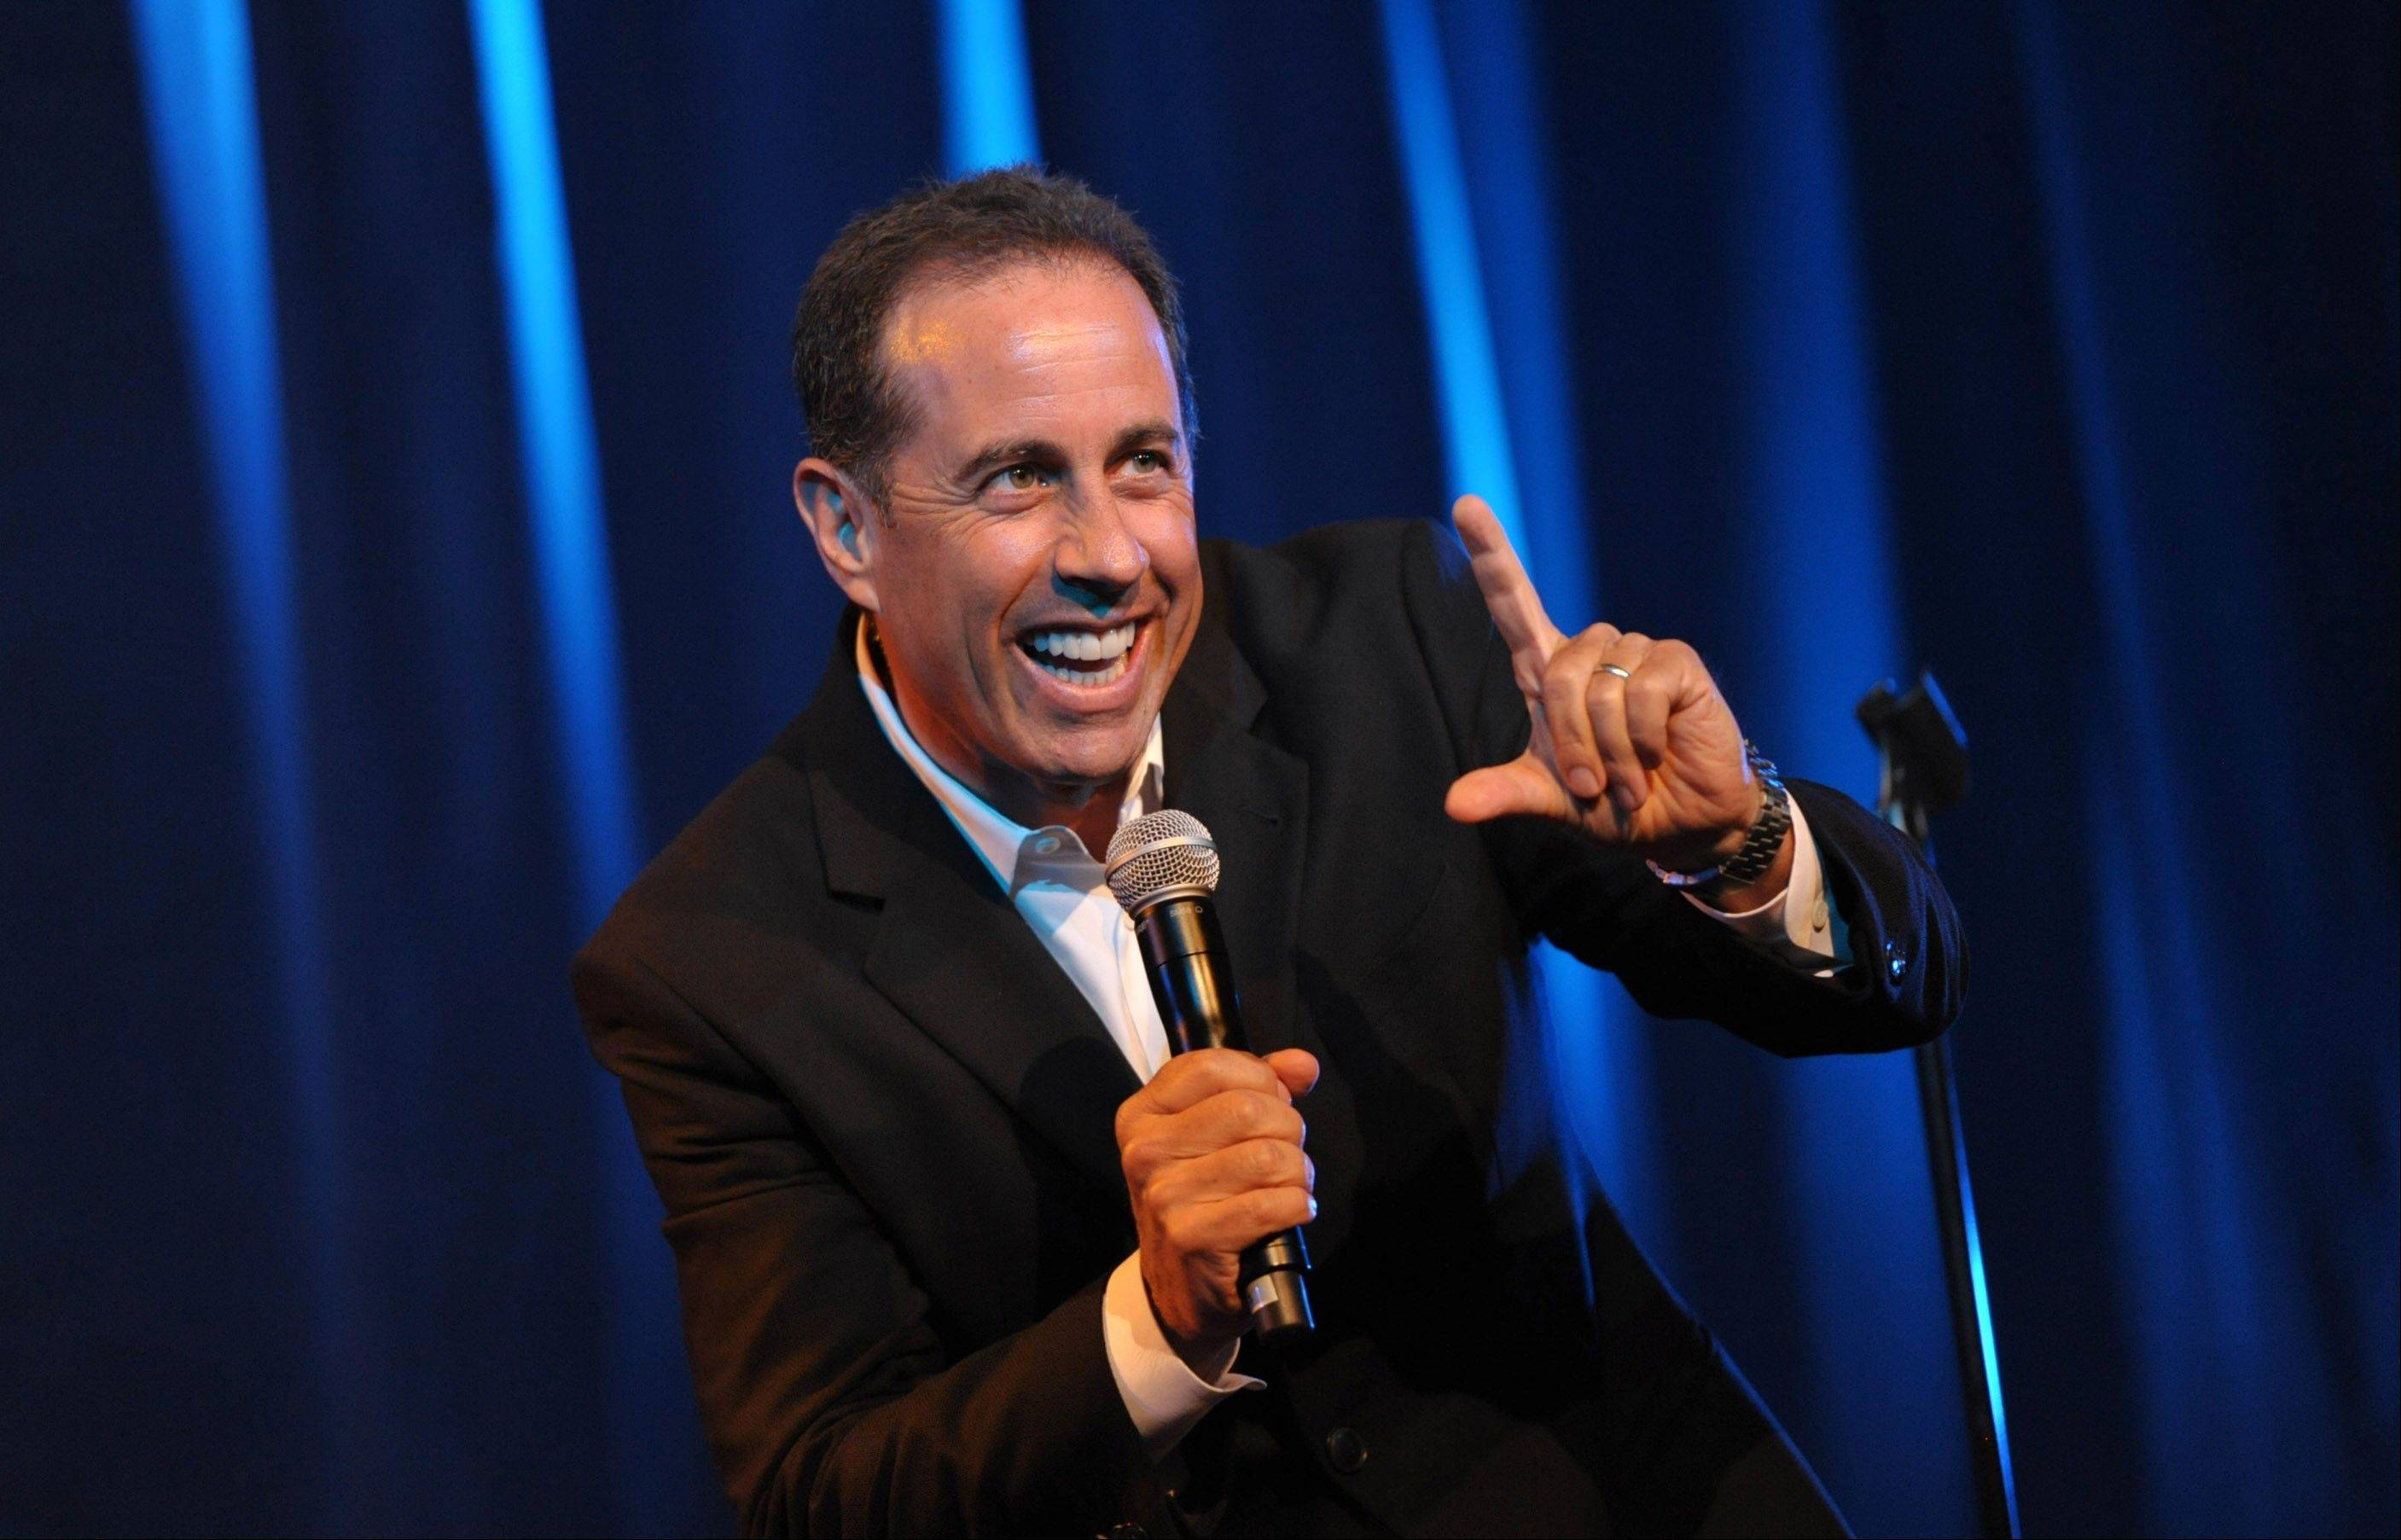 Comedian Jerry Seinfeld has added a show in Long Island to his new comedy tour and will donate all proceeds to it and two other performances to Superstorm Sandy relief.